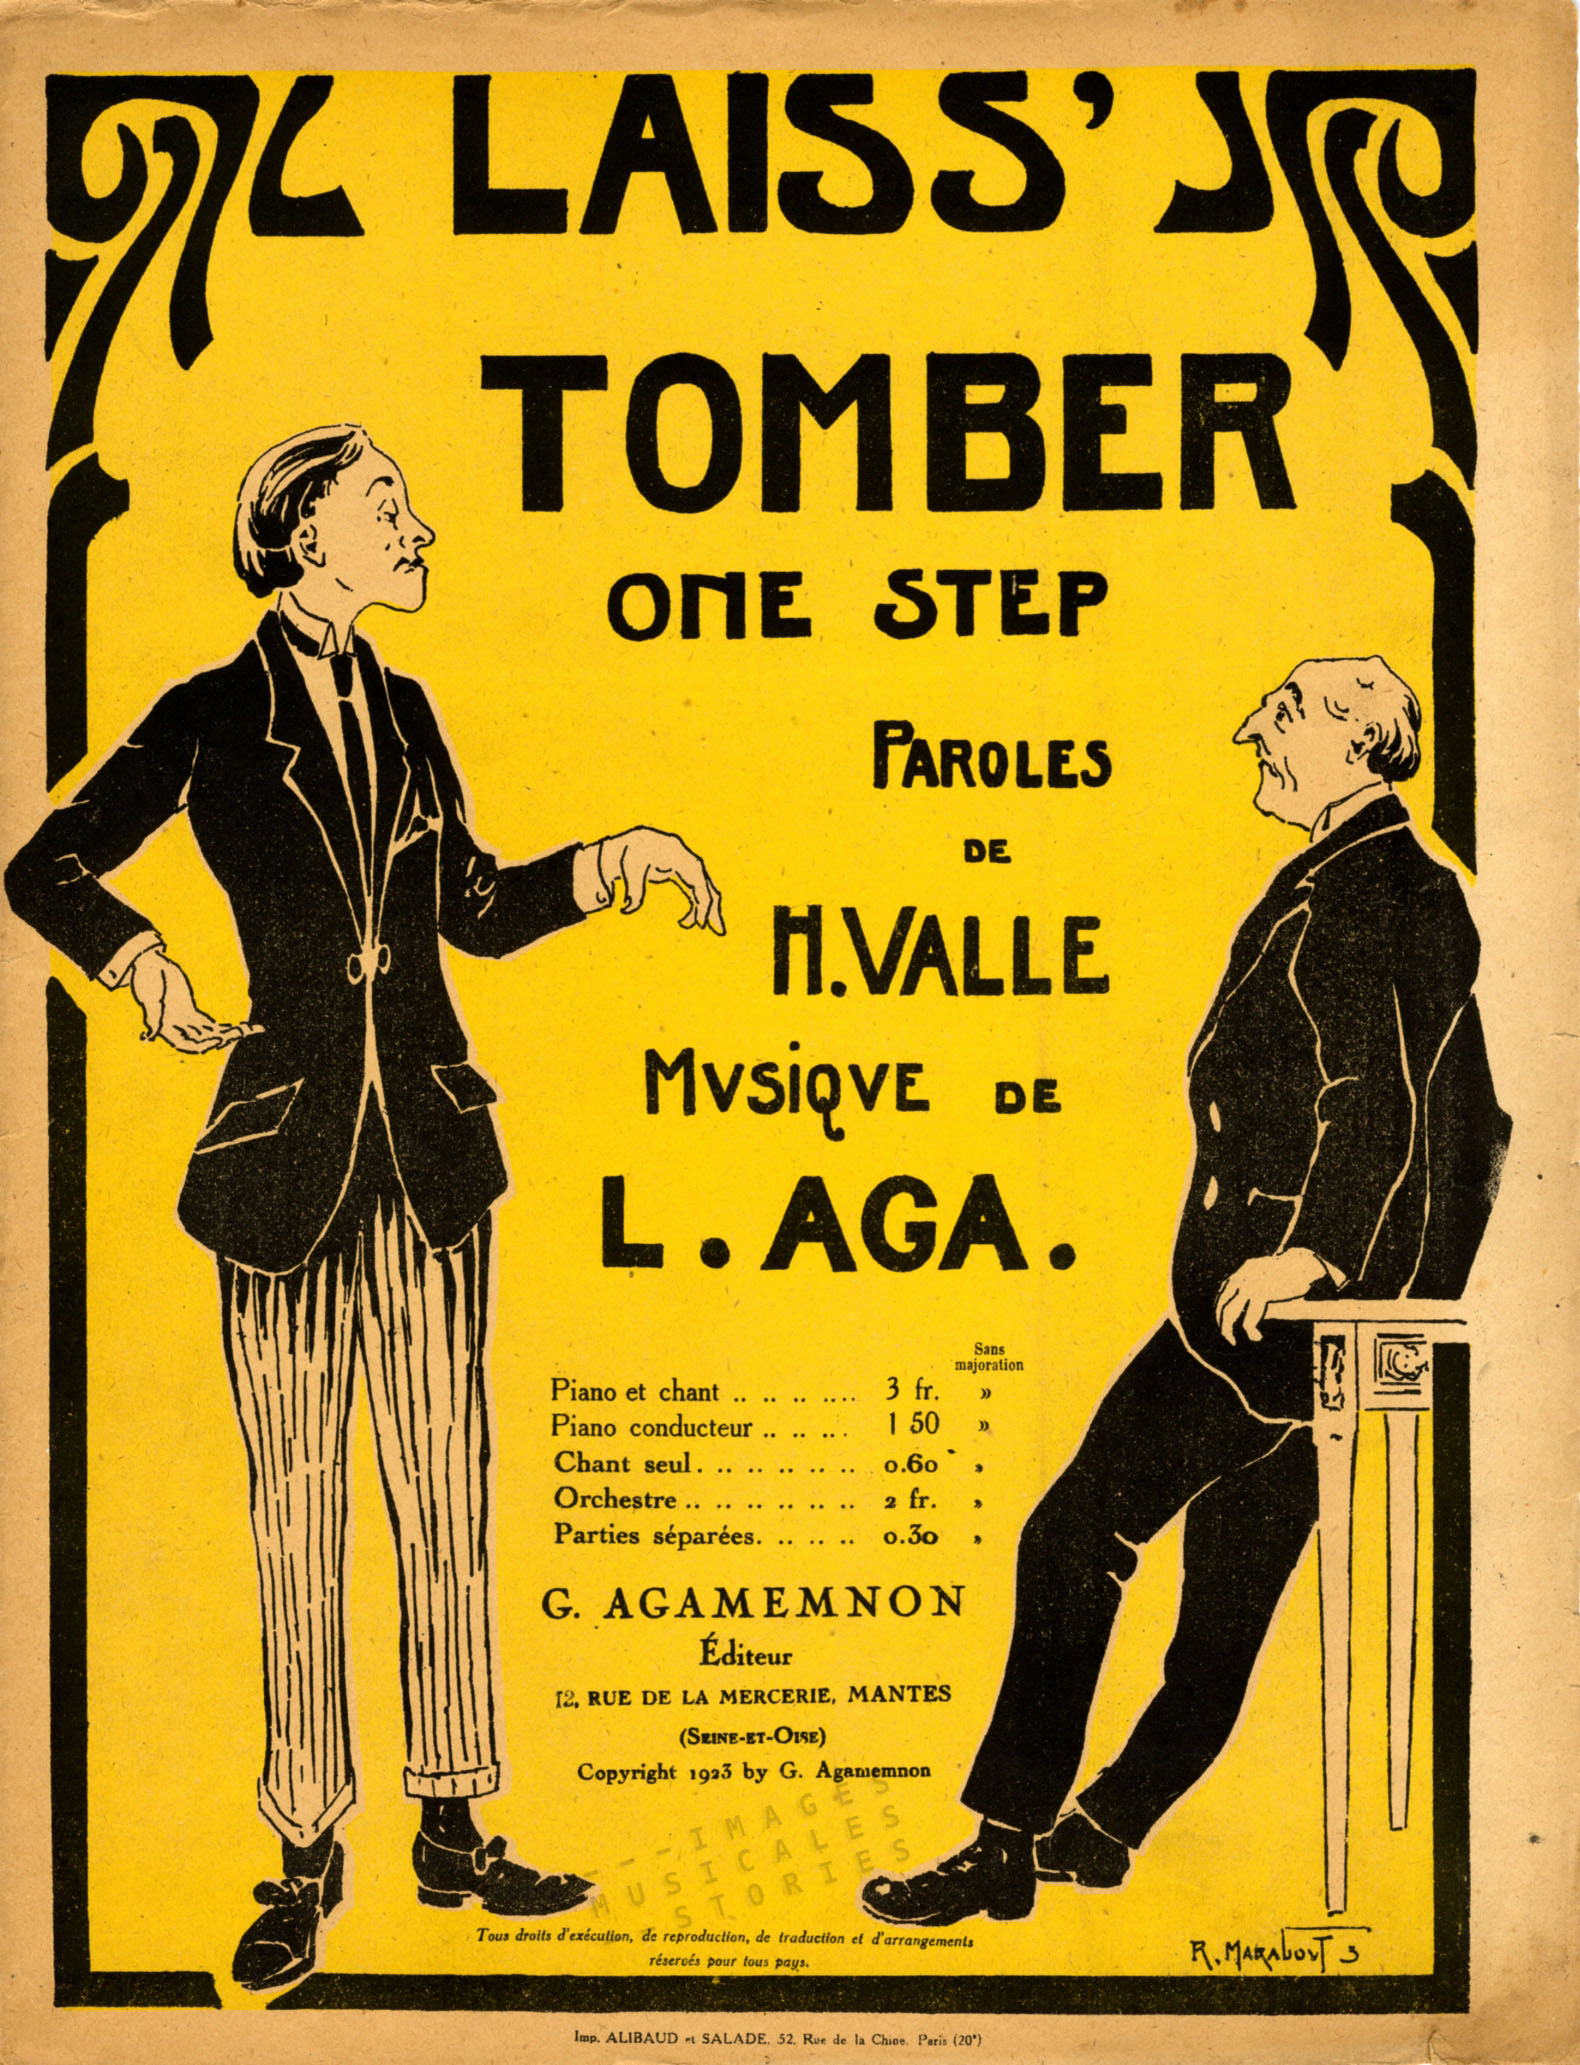 Cover of the sheet music 'Laiss' tomber', one step by L. Aga